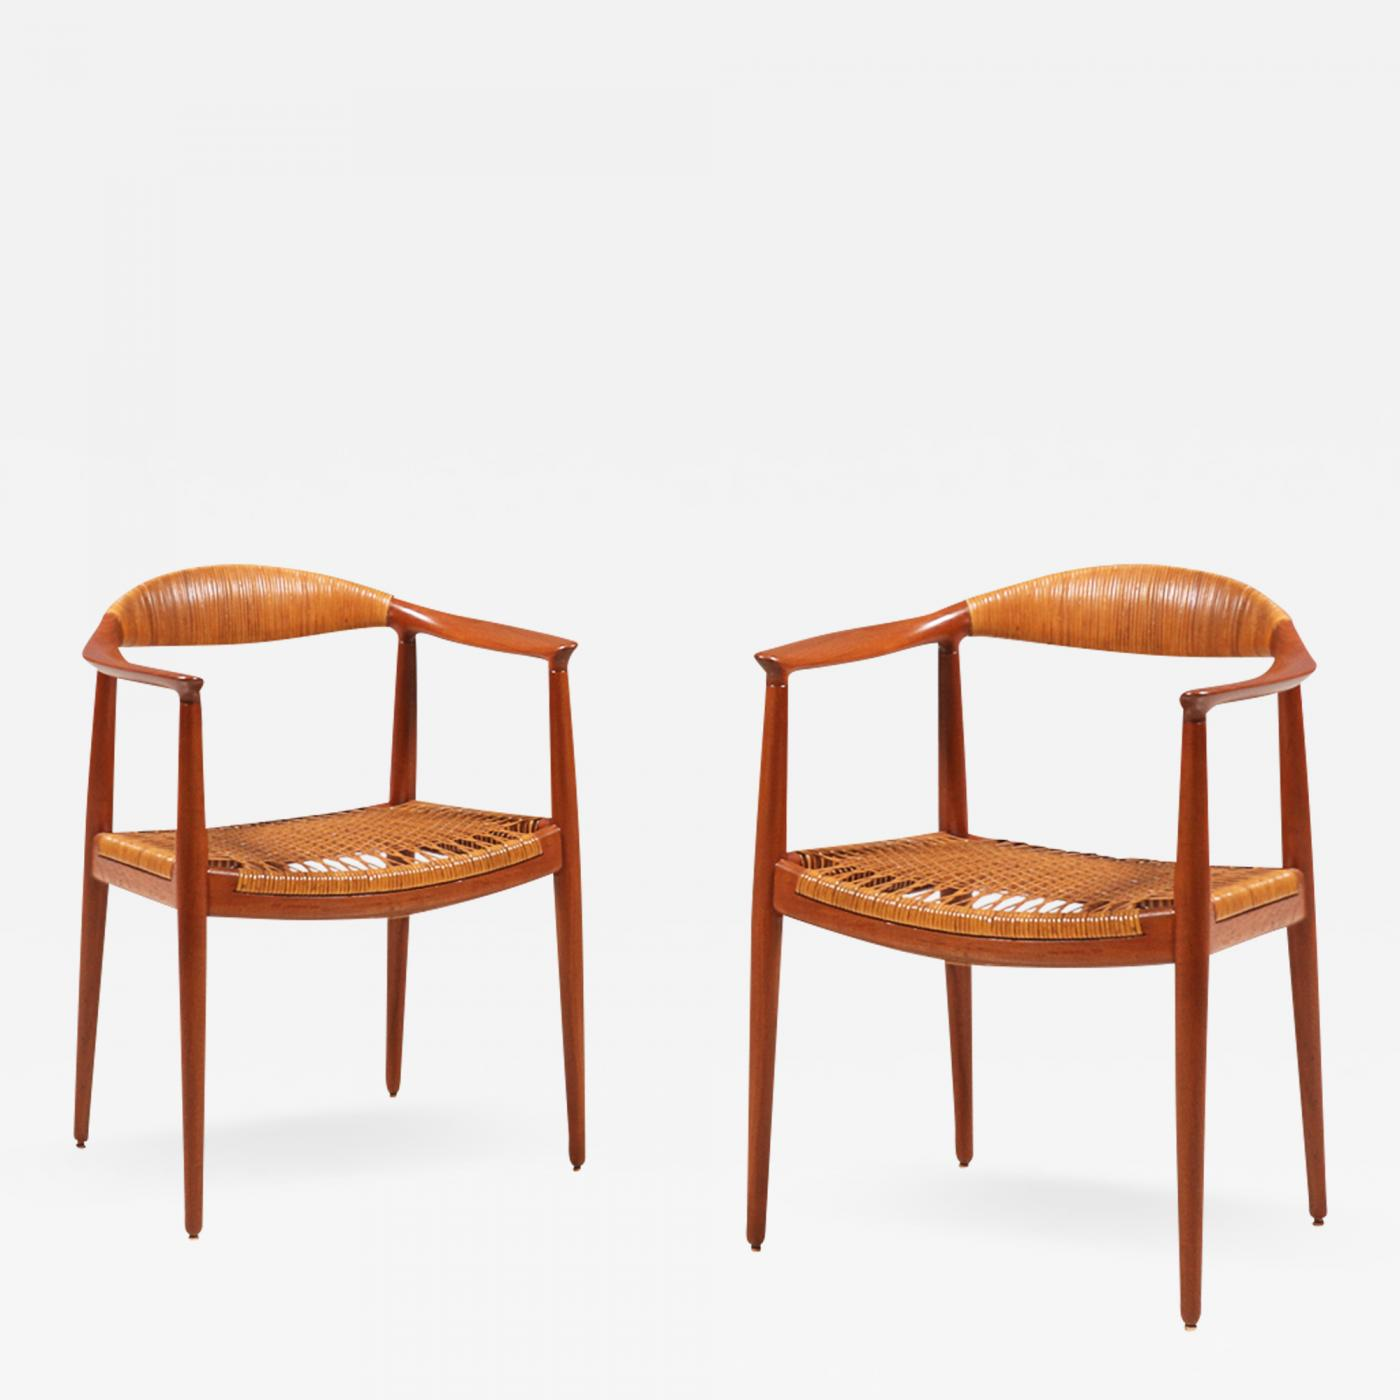 Hans Wegner Round Chair #27 - Want More Images?